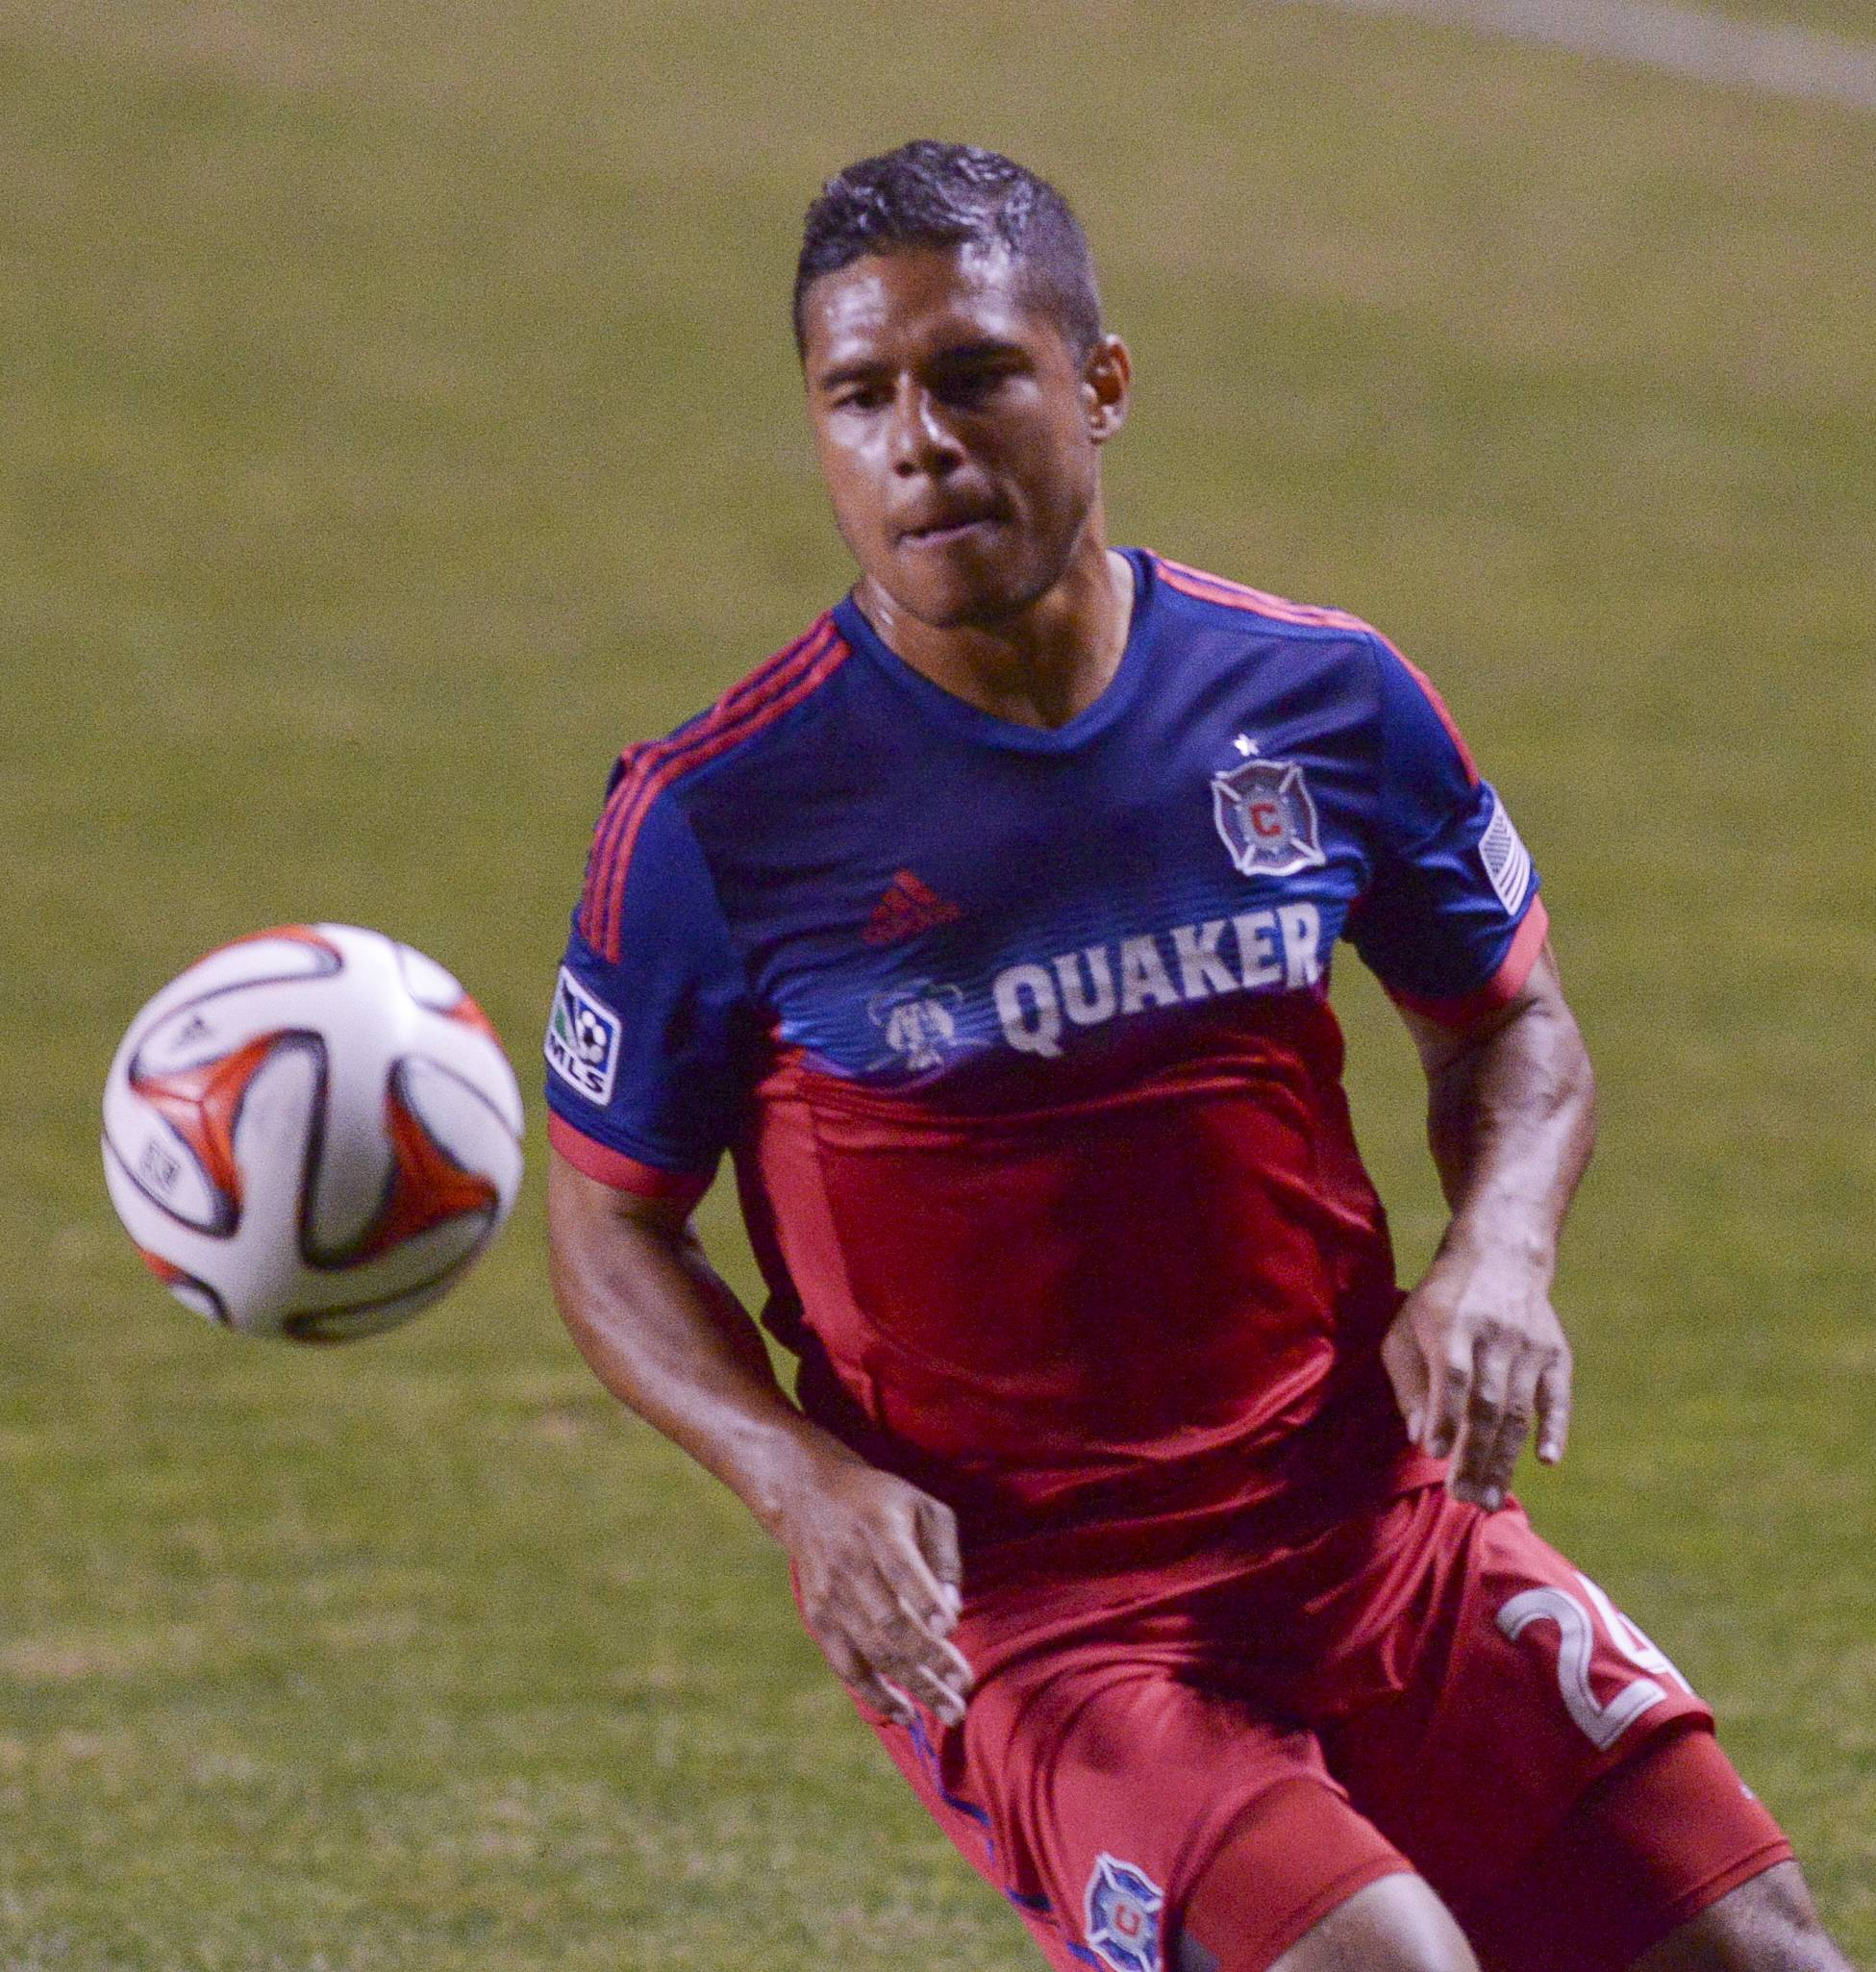 Sources say the Chicago Fire may lose its jersey sponsorship with Quaker, a move that would be a blow to the club.